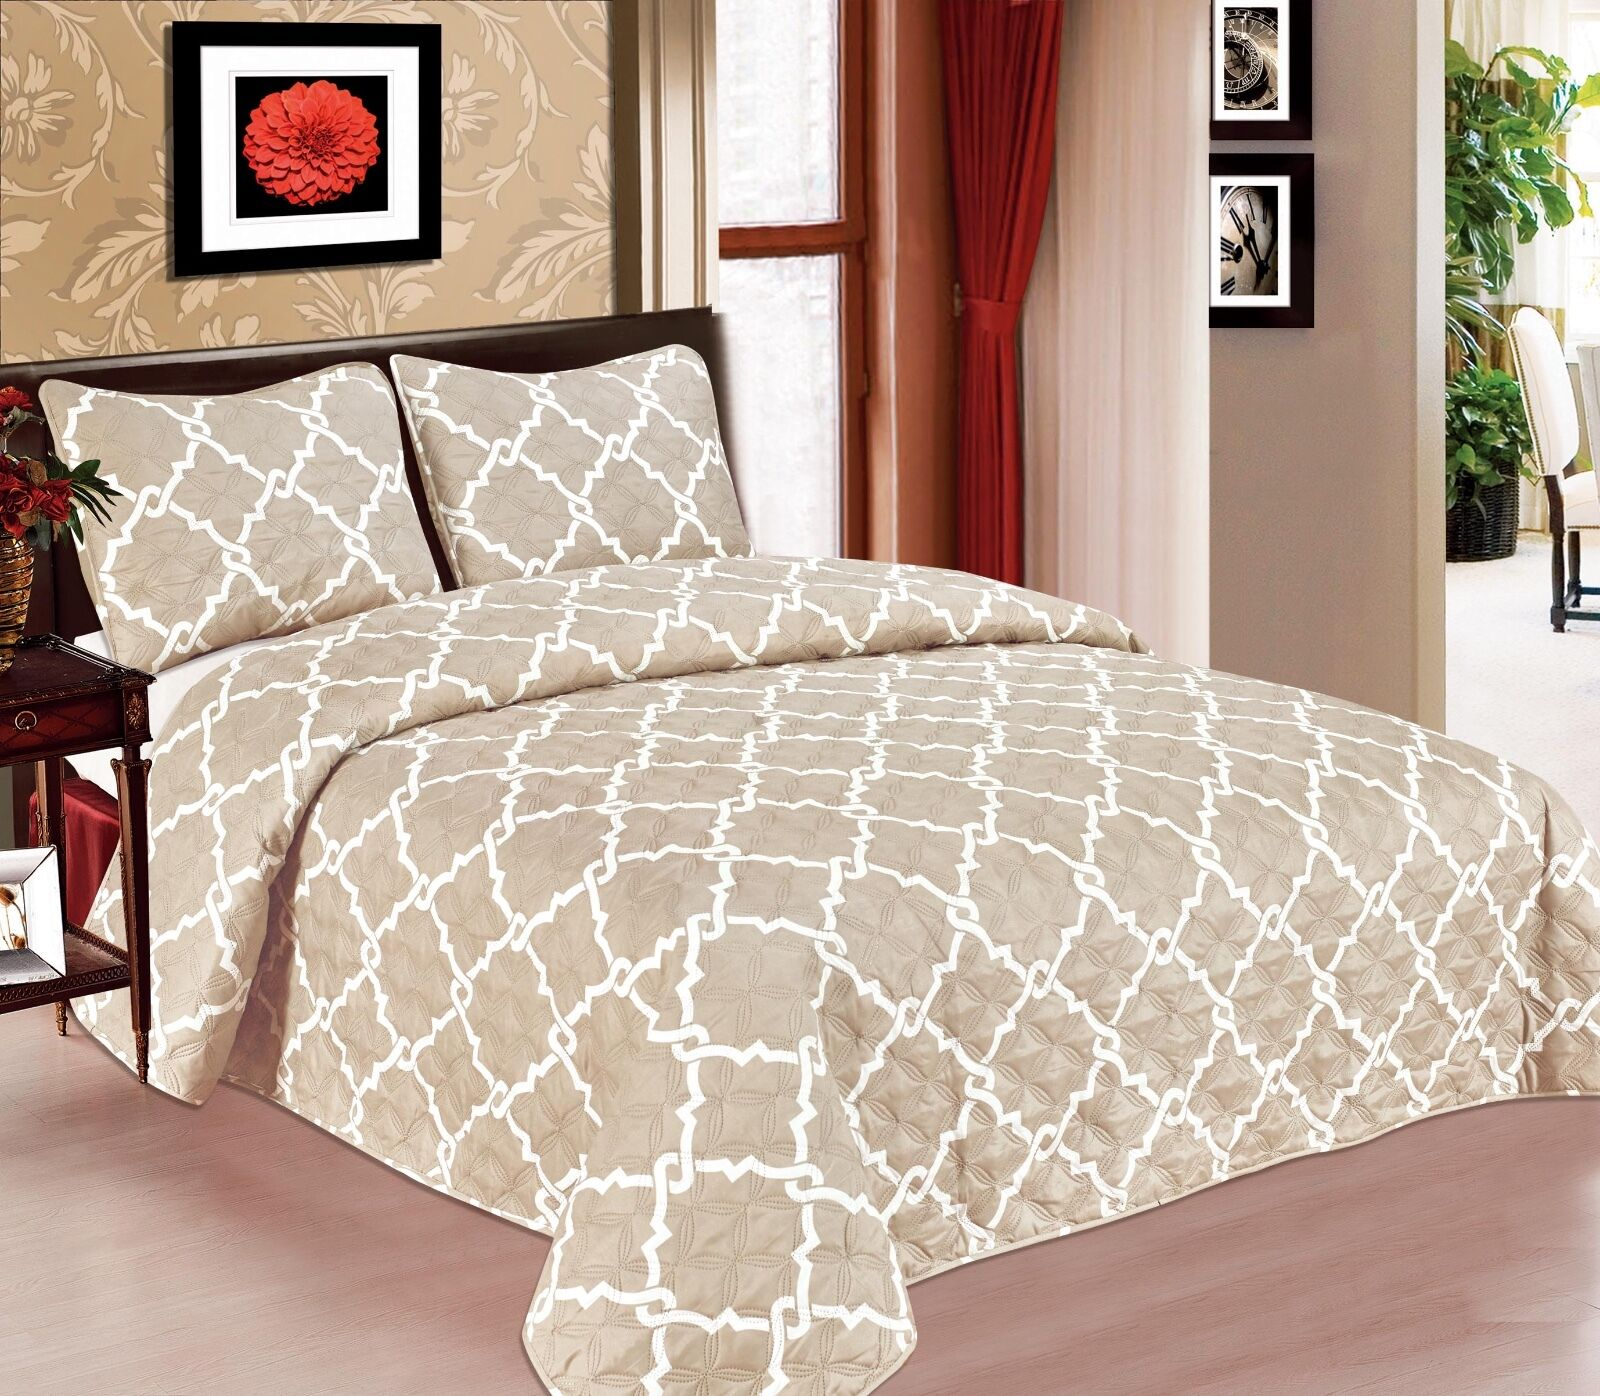 Galaxy 3-Piece Quilted Bedspread Soft Microfiber Bedding Set- Taupe